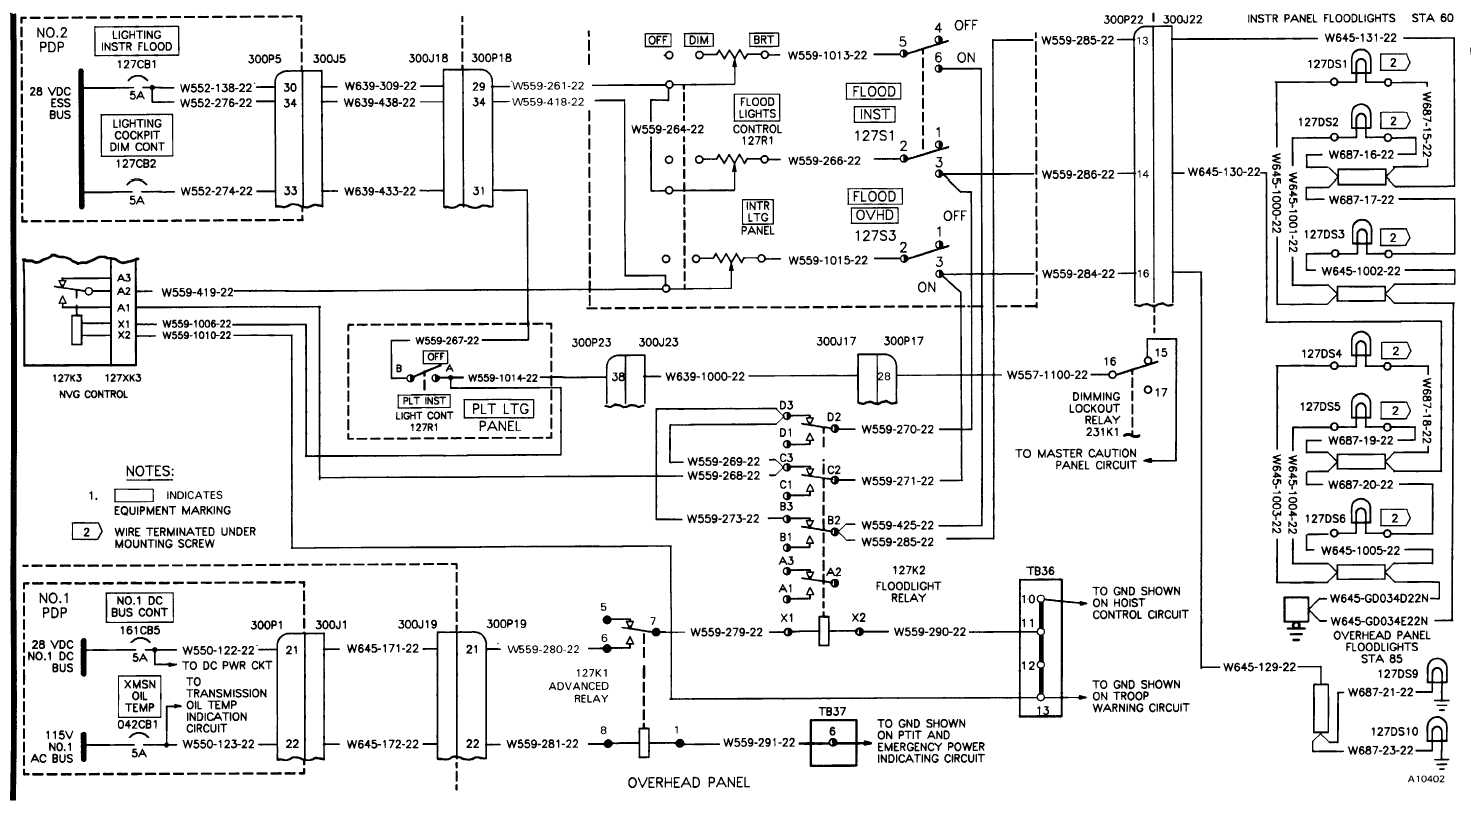 Secondary Cockpit Lights Wiring Diagram Tm 55 1520 240 T 9 1310 With 1 3